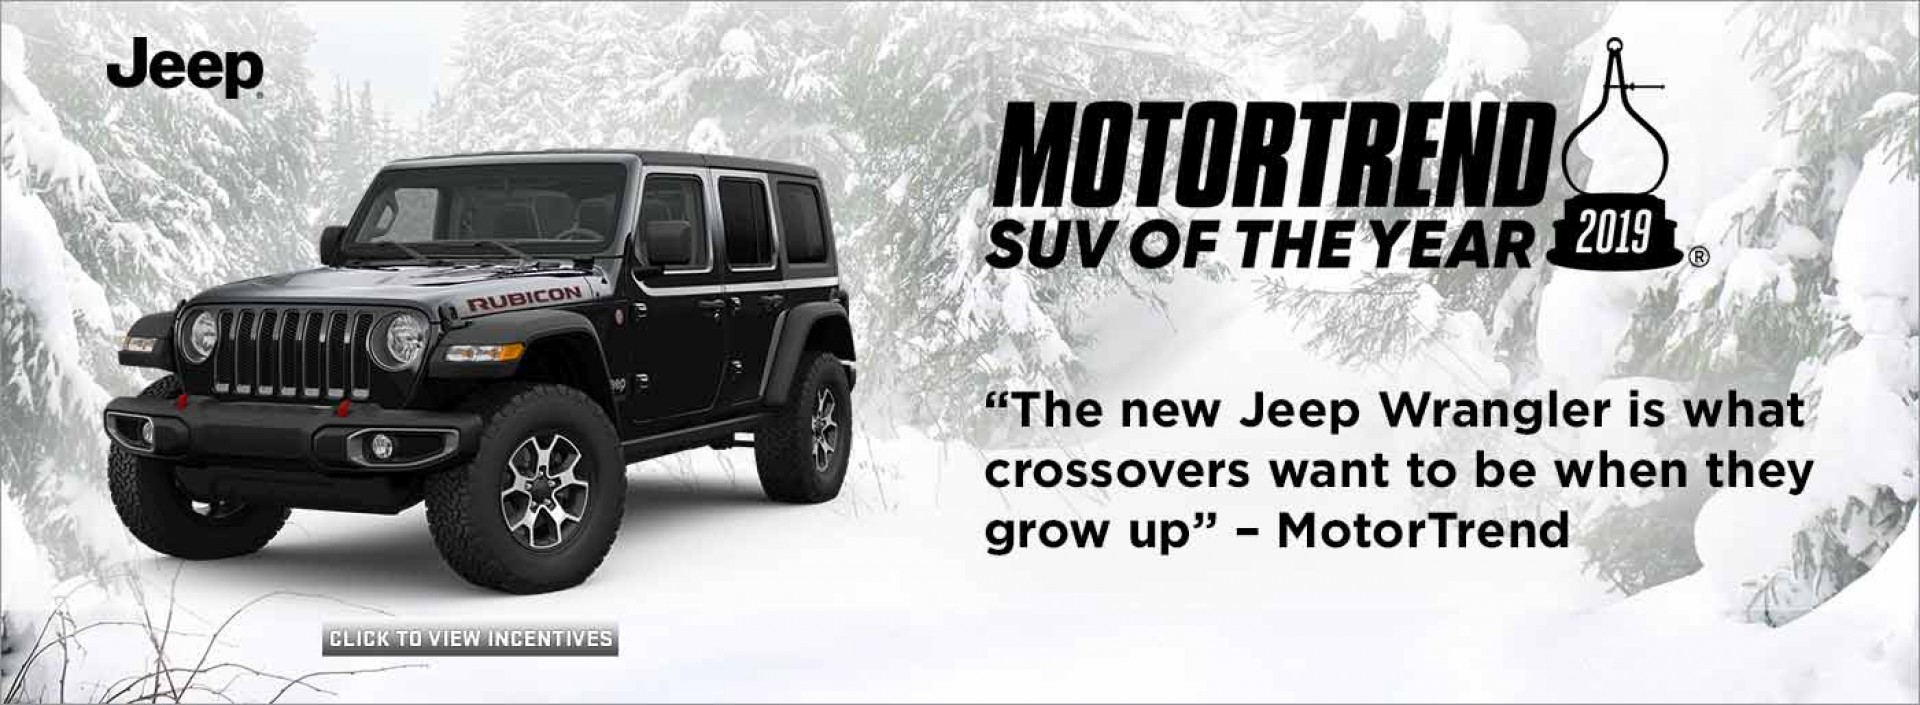 Motortrend SUV Of The Year